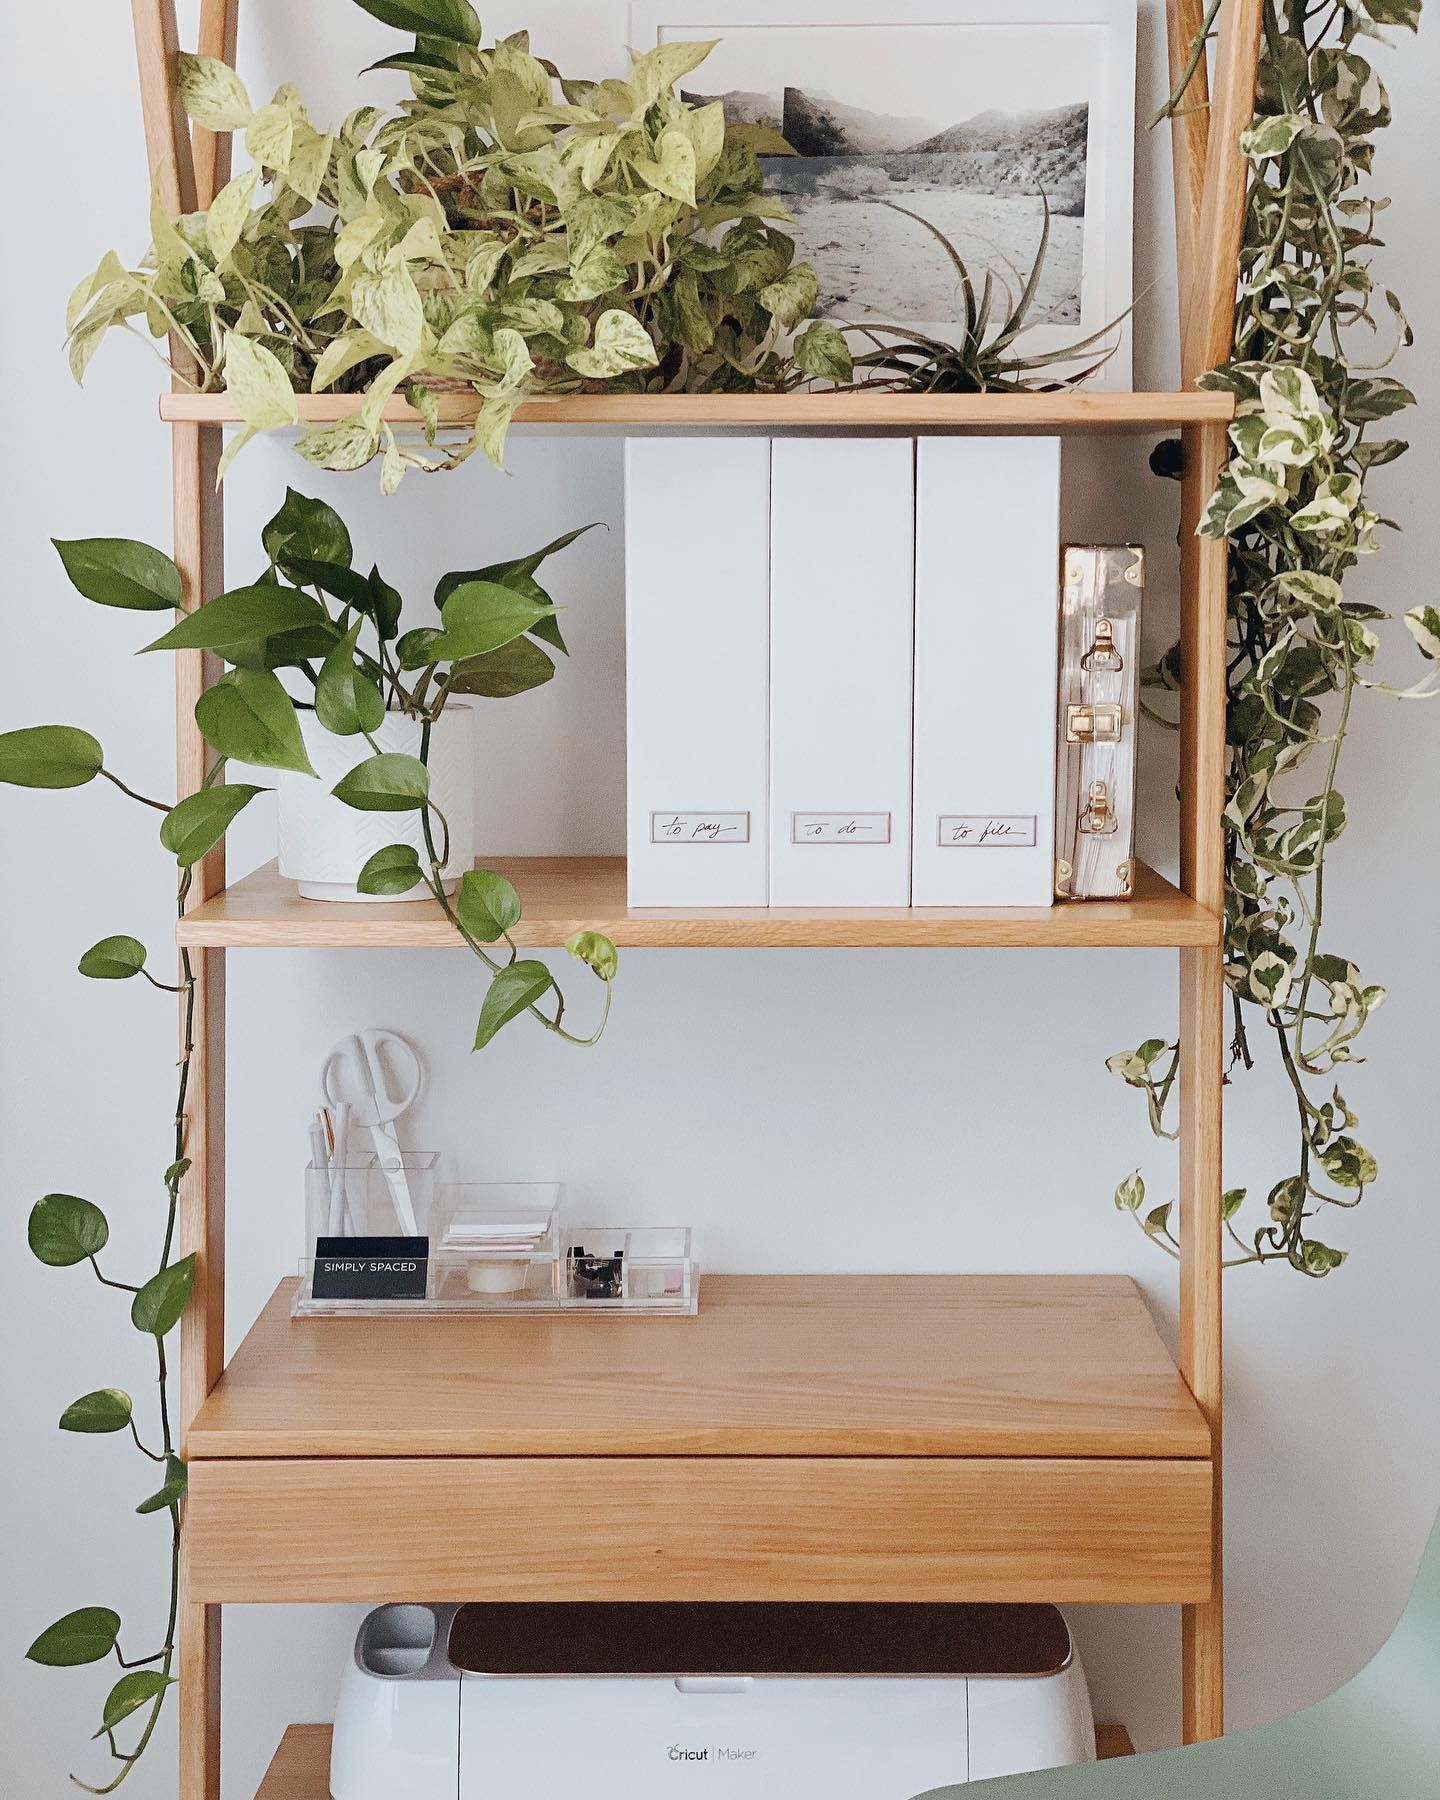 Clear the clutter and create productivity. simplyspaced